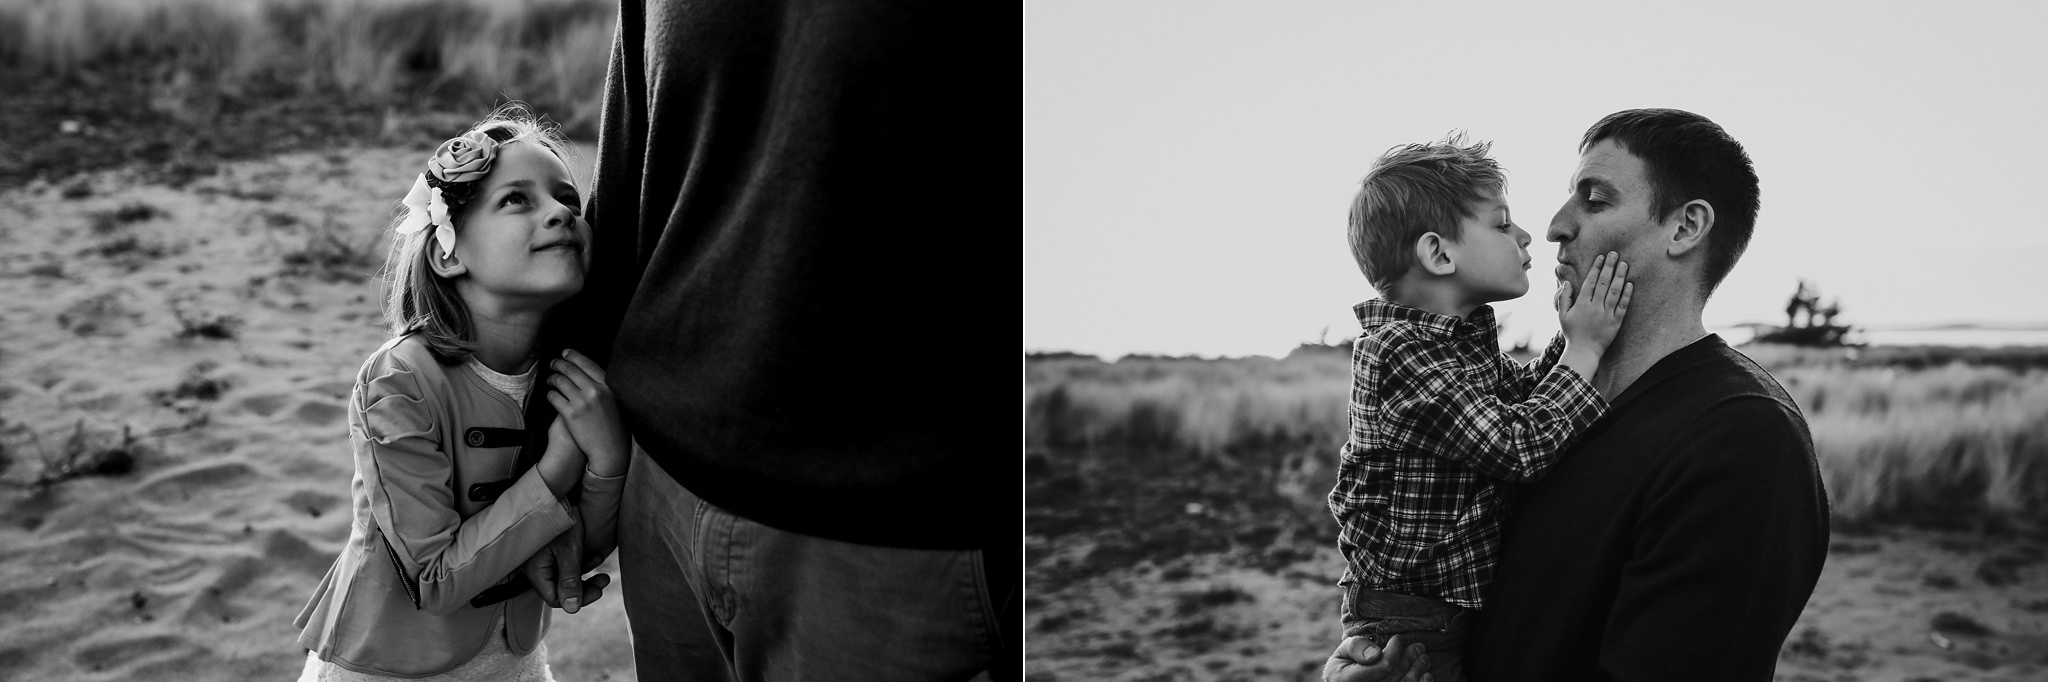 Whidbey-Island-Family-Photographer-Kara-Chappell-Photography_1202.jpg